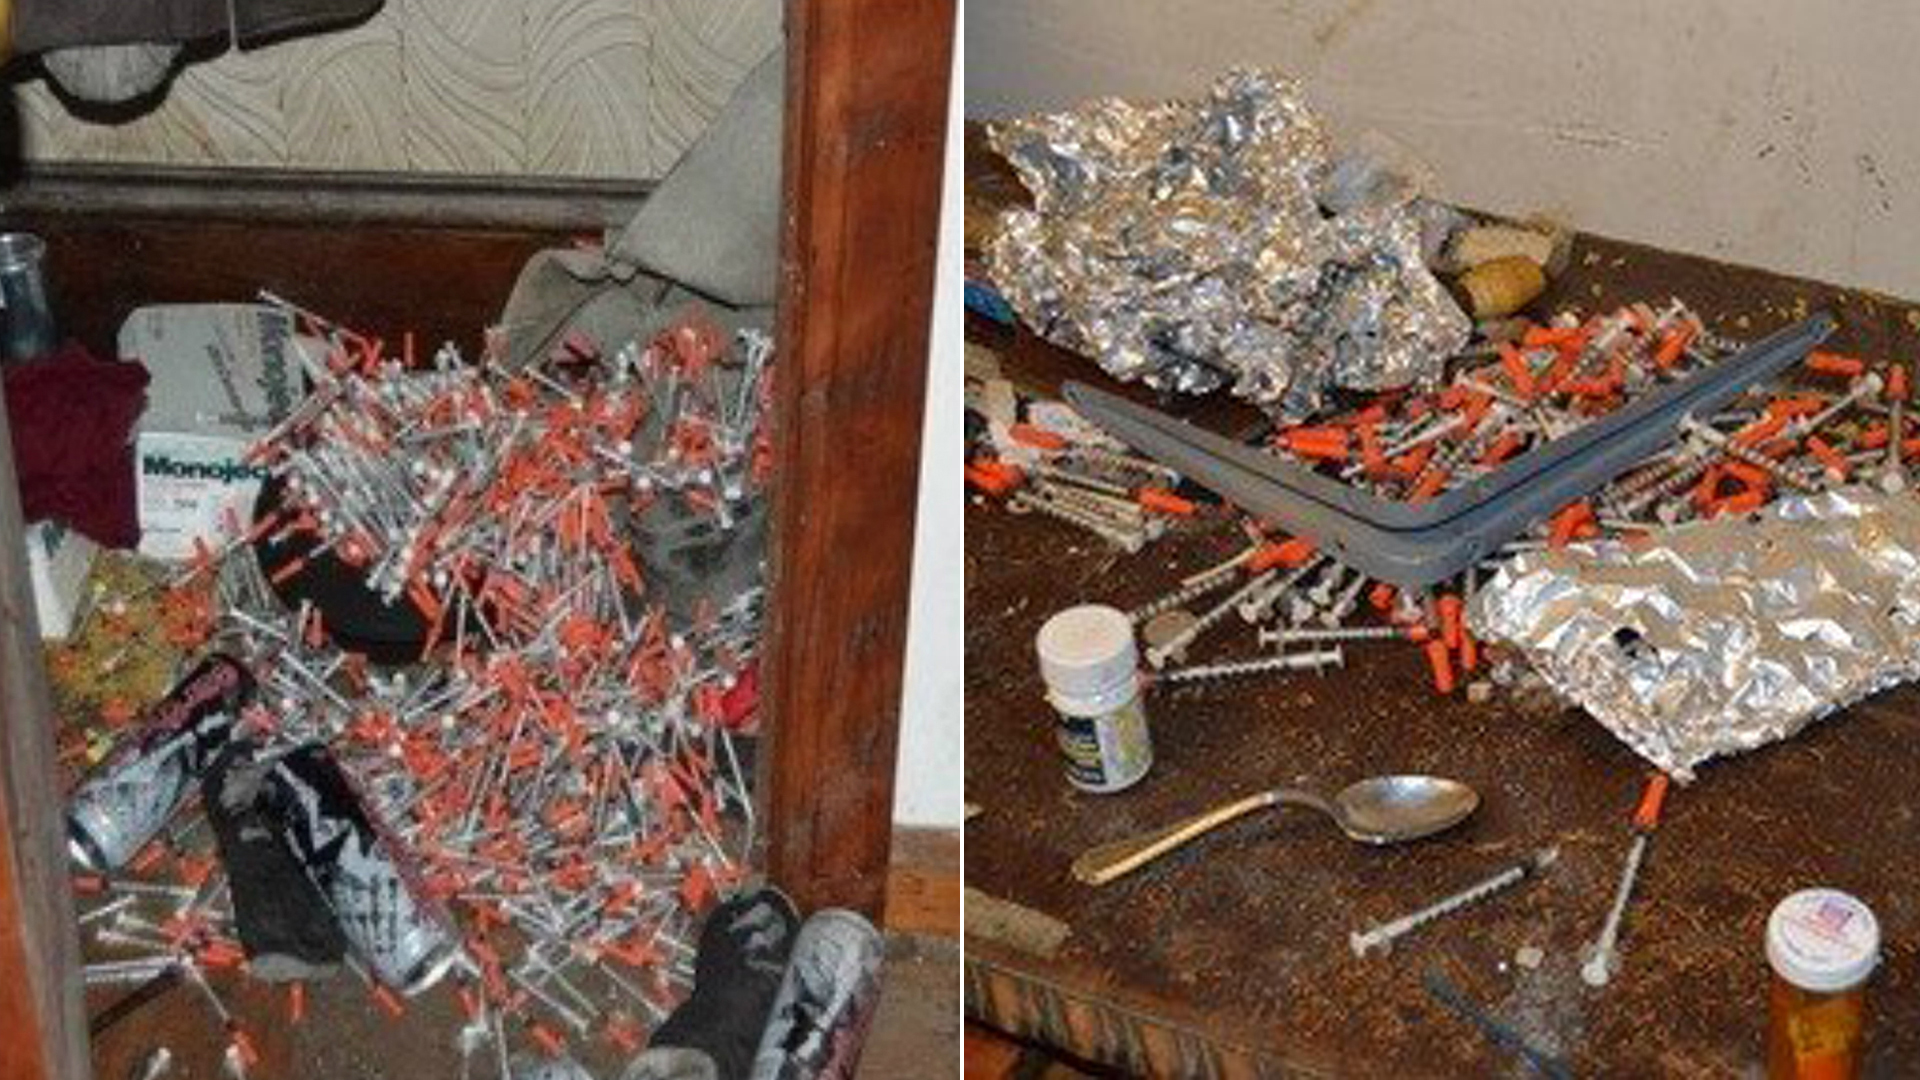 The Lorain Police Department released photos of some of the needles found in the abandoned home.